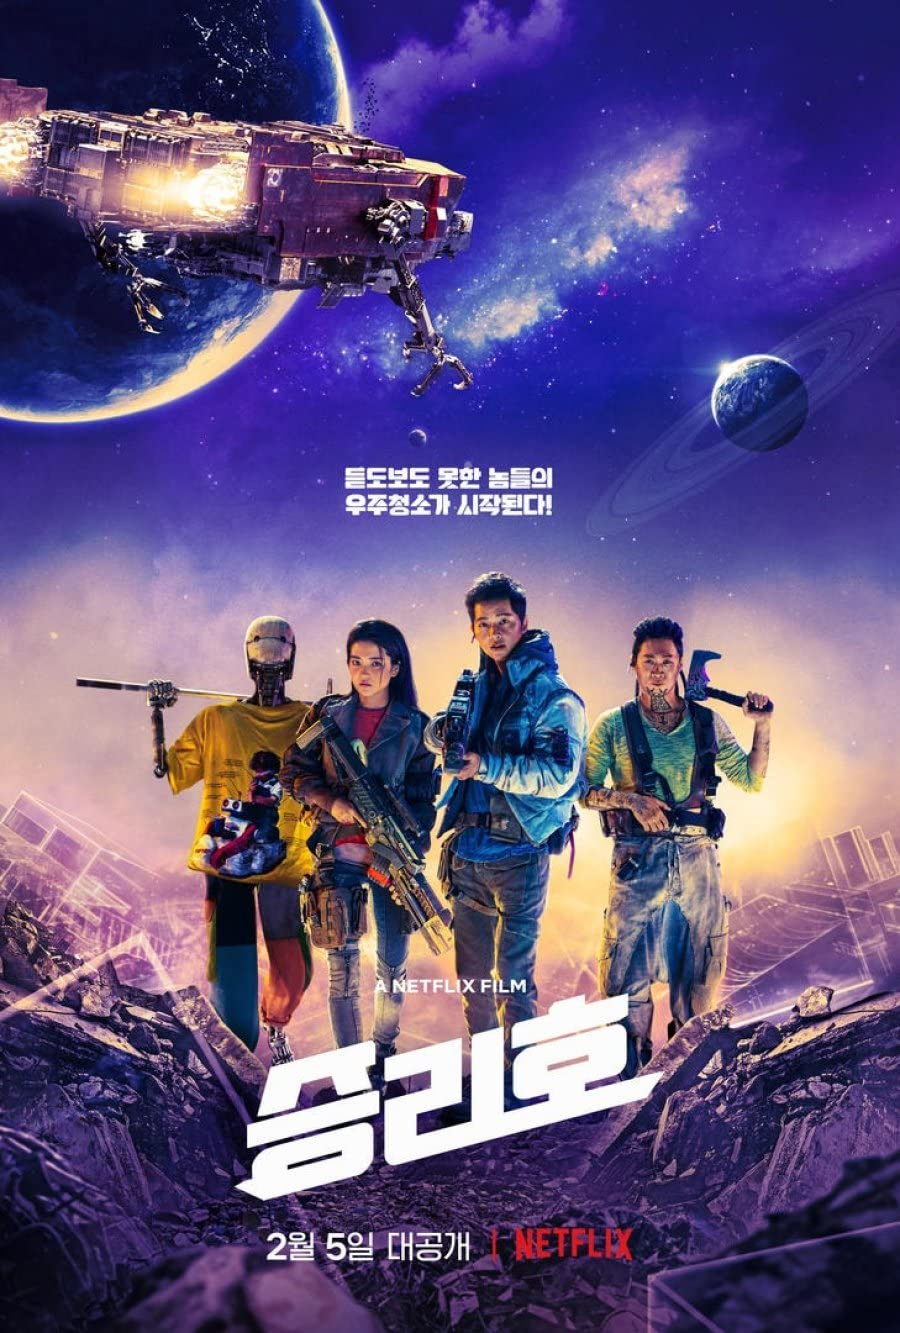 Space Sweepers (2021) 1080p NF HDRip Hollywood Movie ORG. [Dual Audio] [Hindi or English] Watch Online